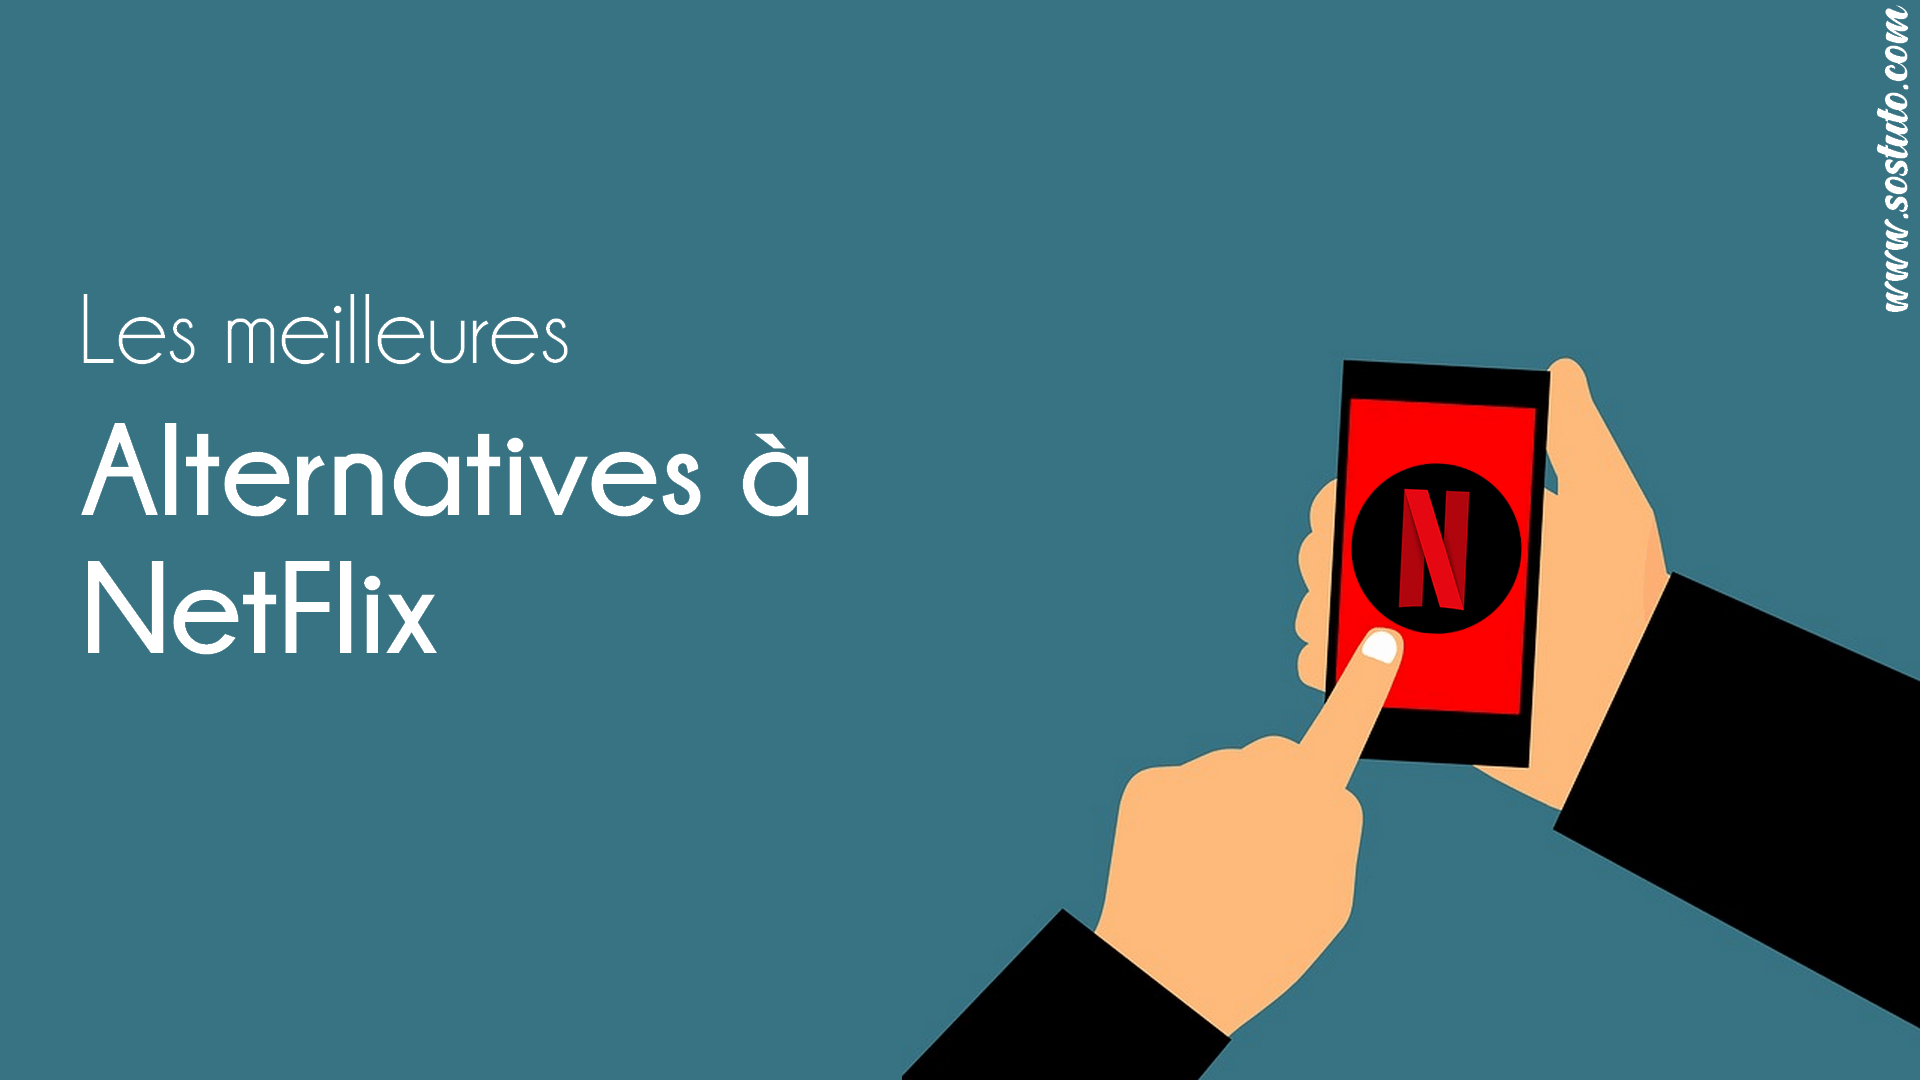 alternatives à Netflix NetFlix Alternatives 2019 – Top 10 Sites de Streaming Légal comme Netflix